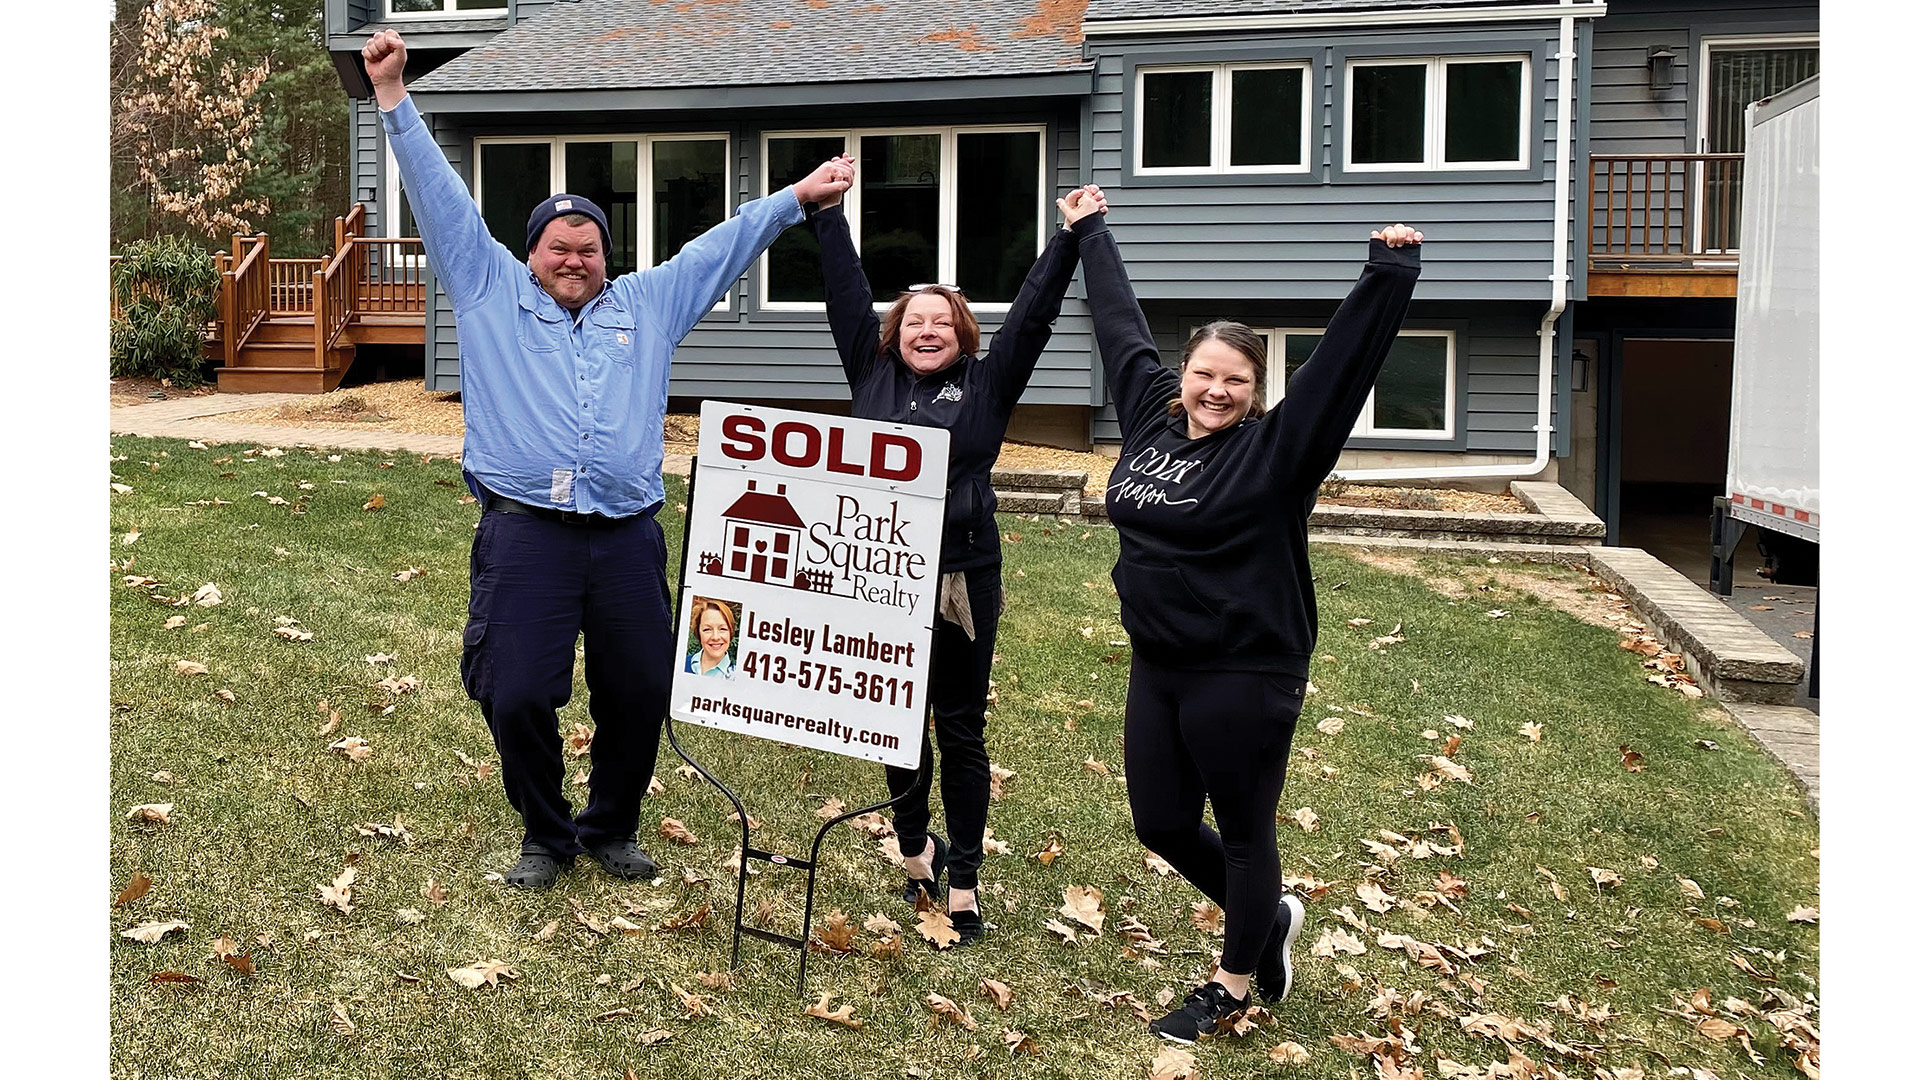 Lesley Lambert (center, celebrating another sale)